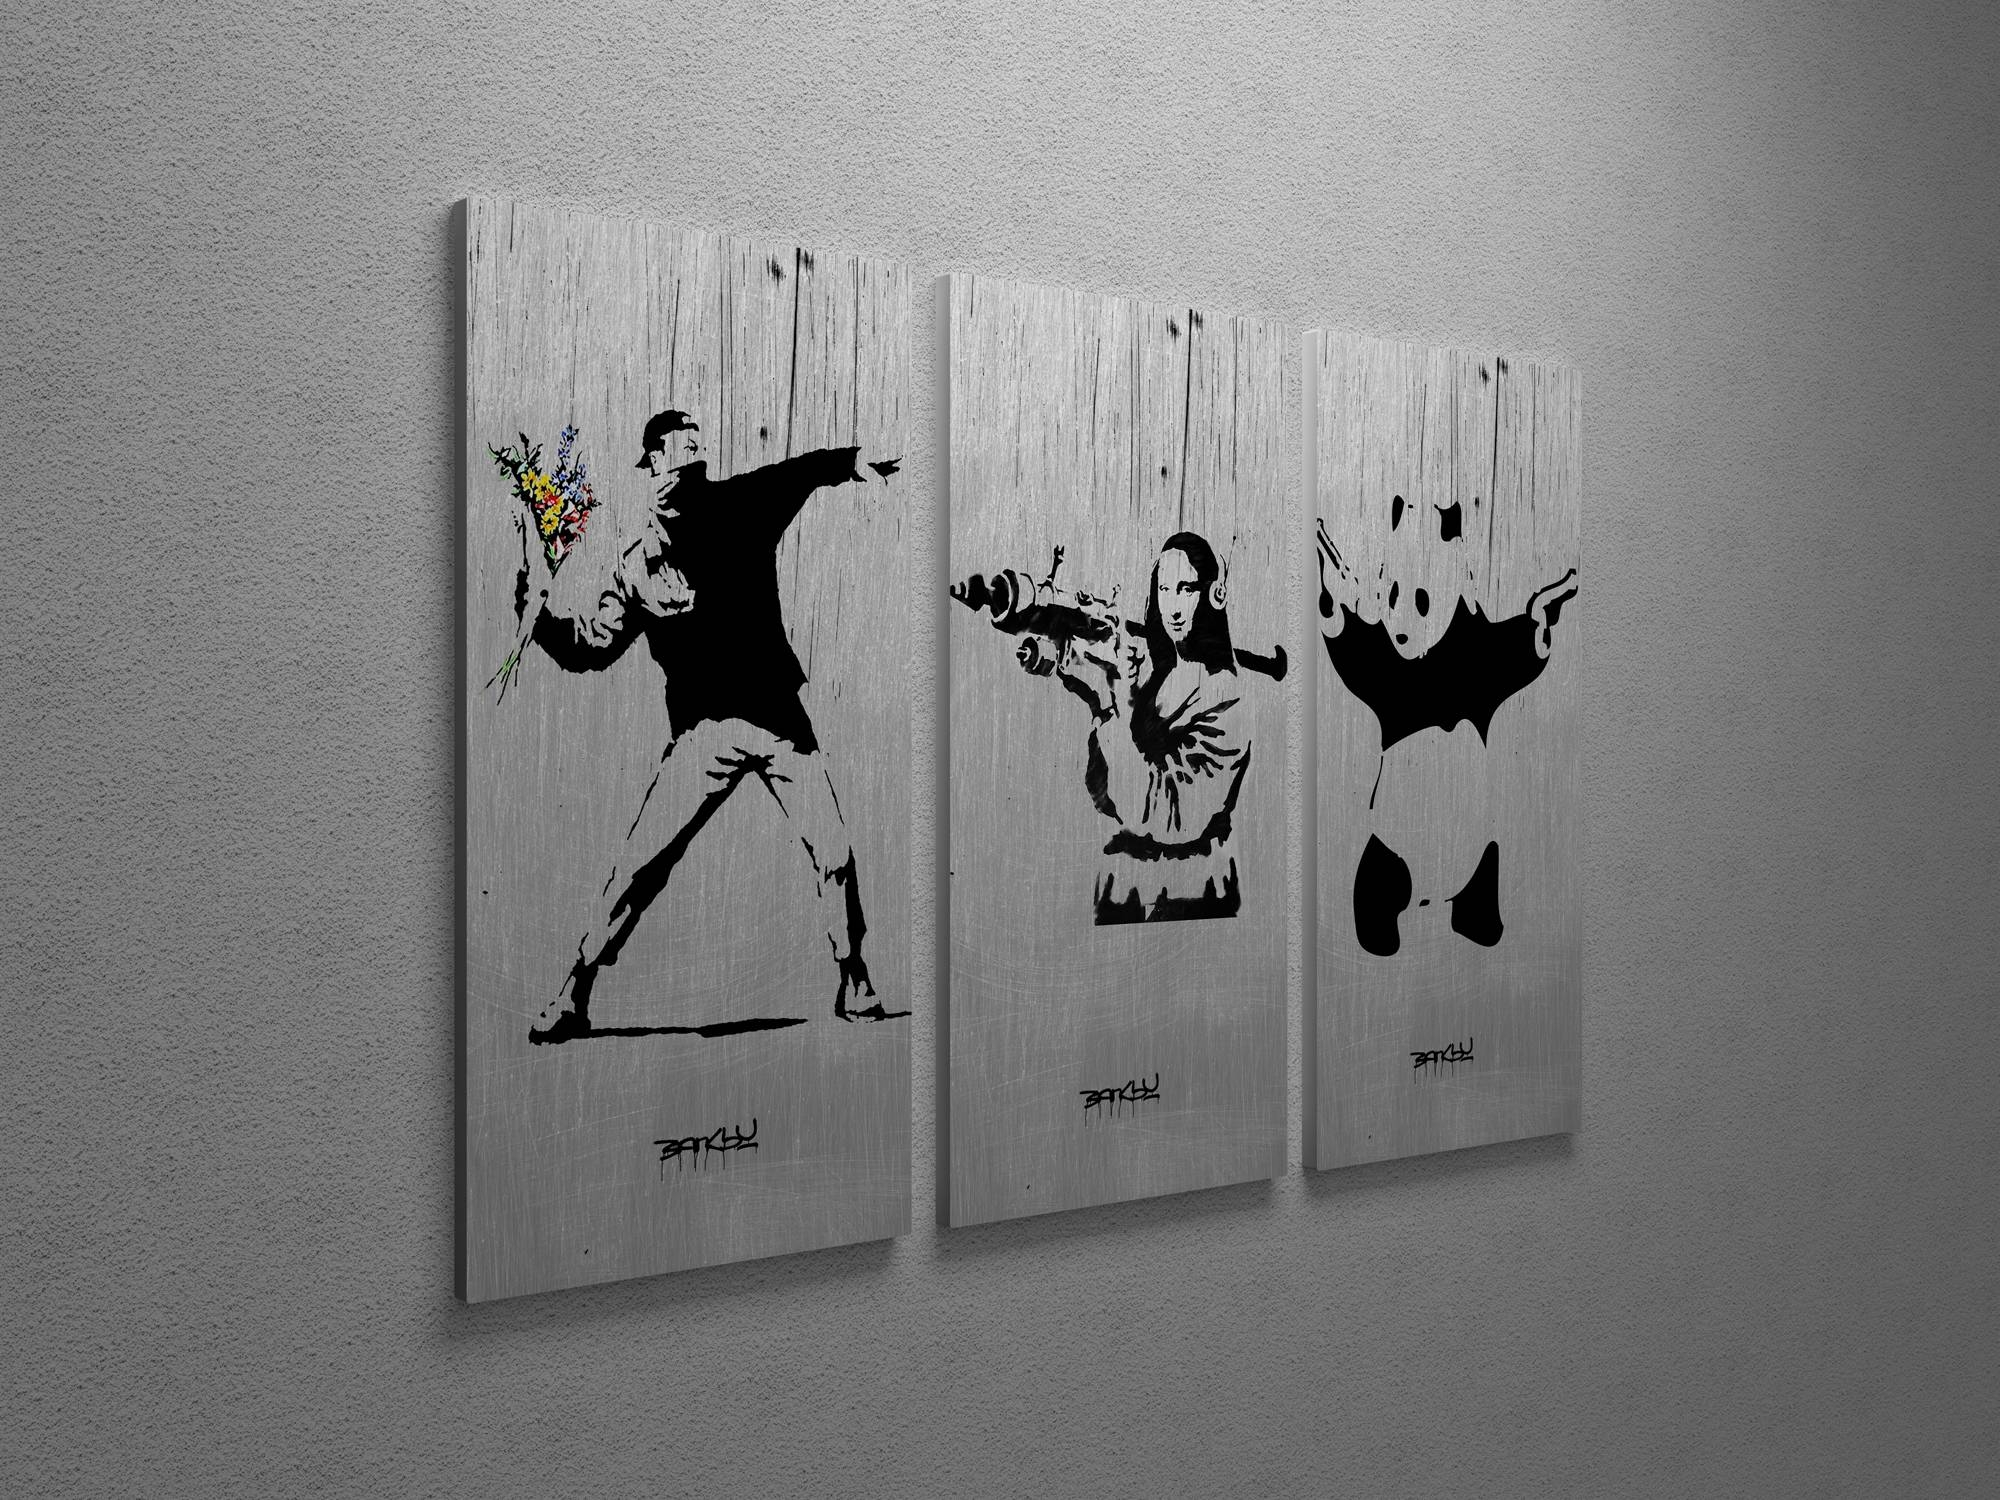 Banksy Flower Thrower, Mona Lisa, Panda Collage Triptych Canvas With Best And Newest Banksy Wall Art Canvas (View 7 of 20)